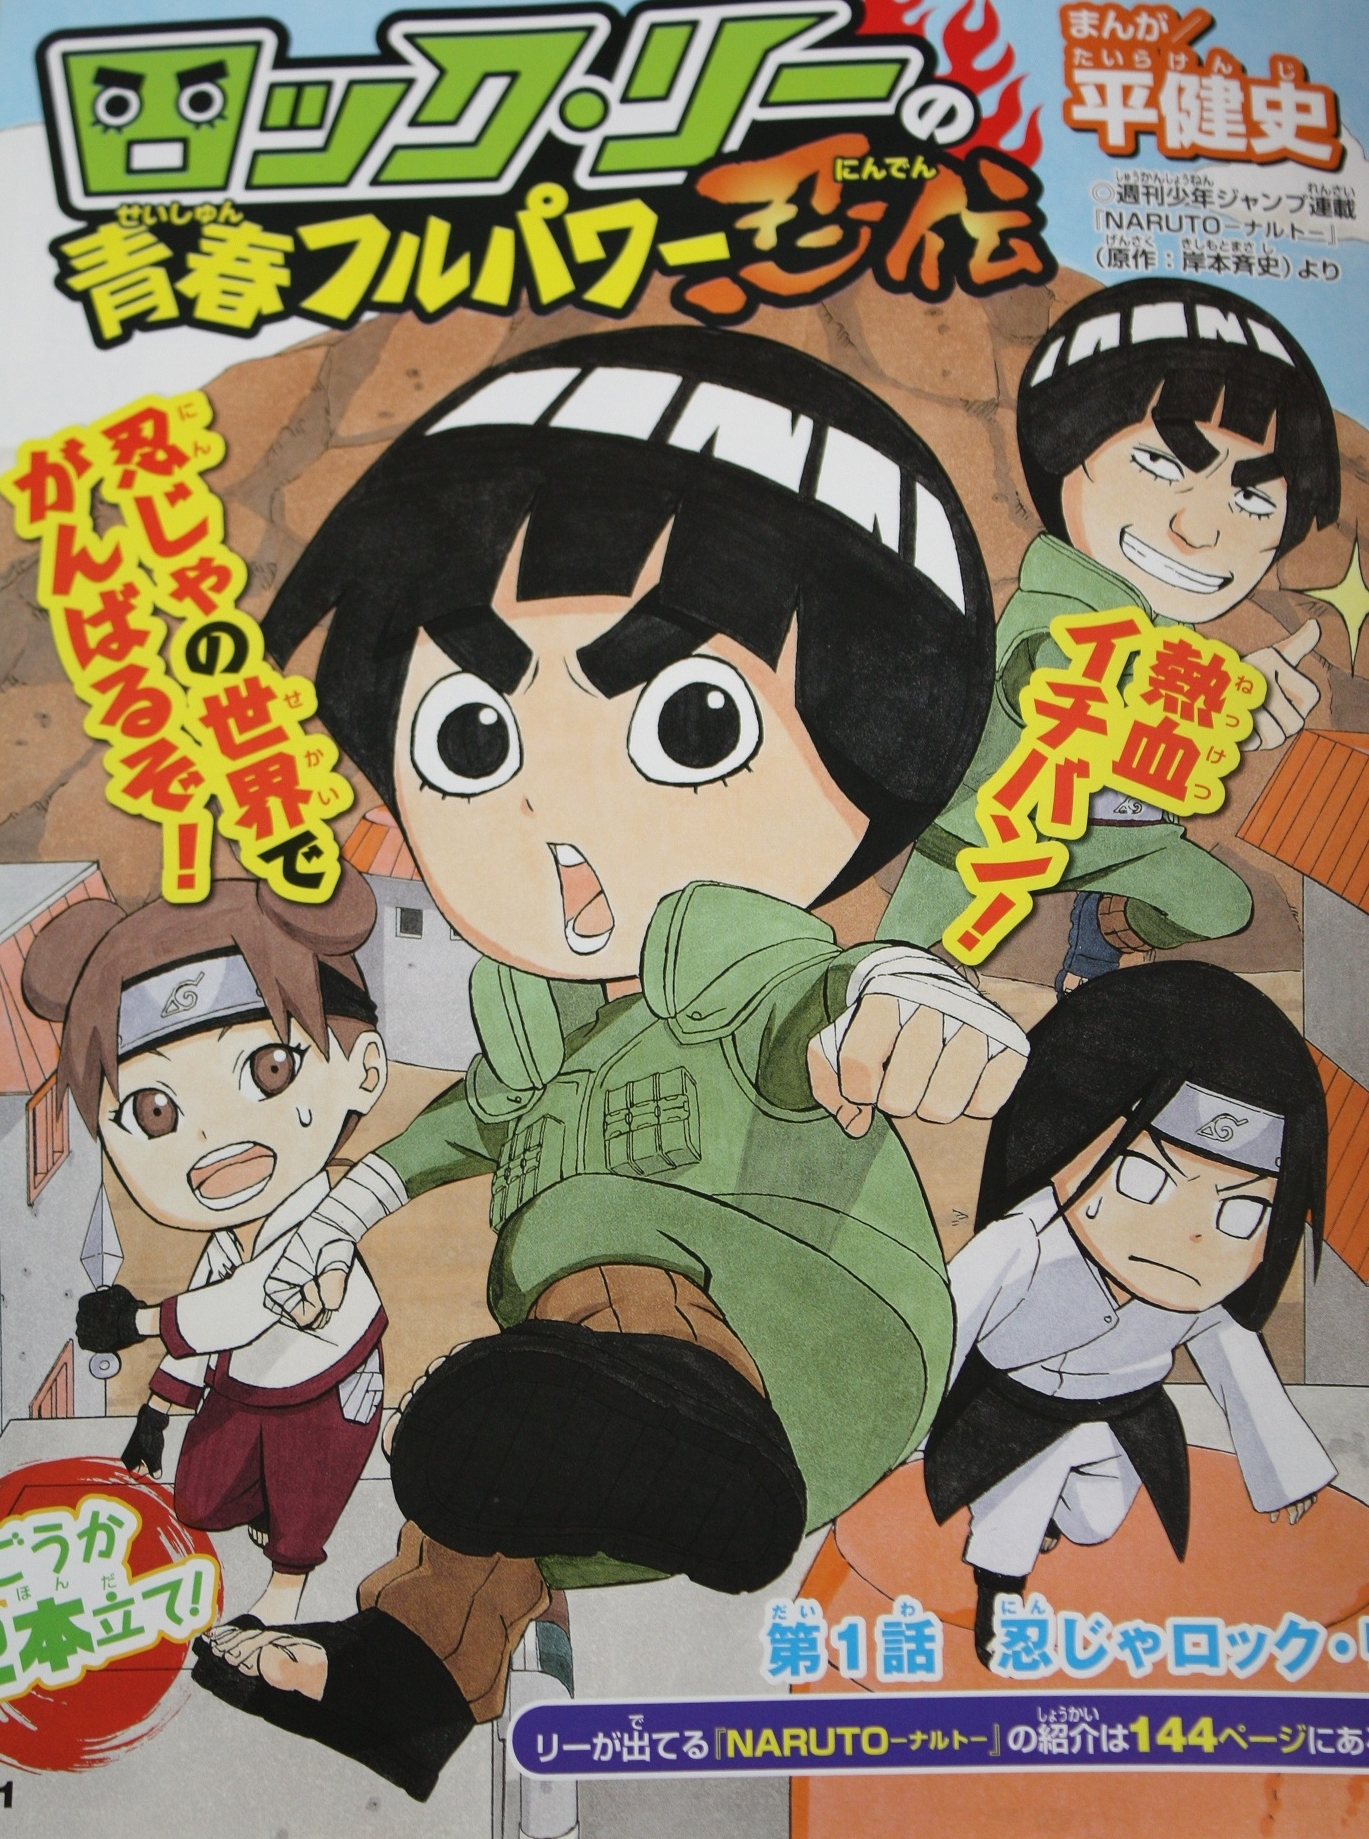 El Ninja Rock Lee